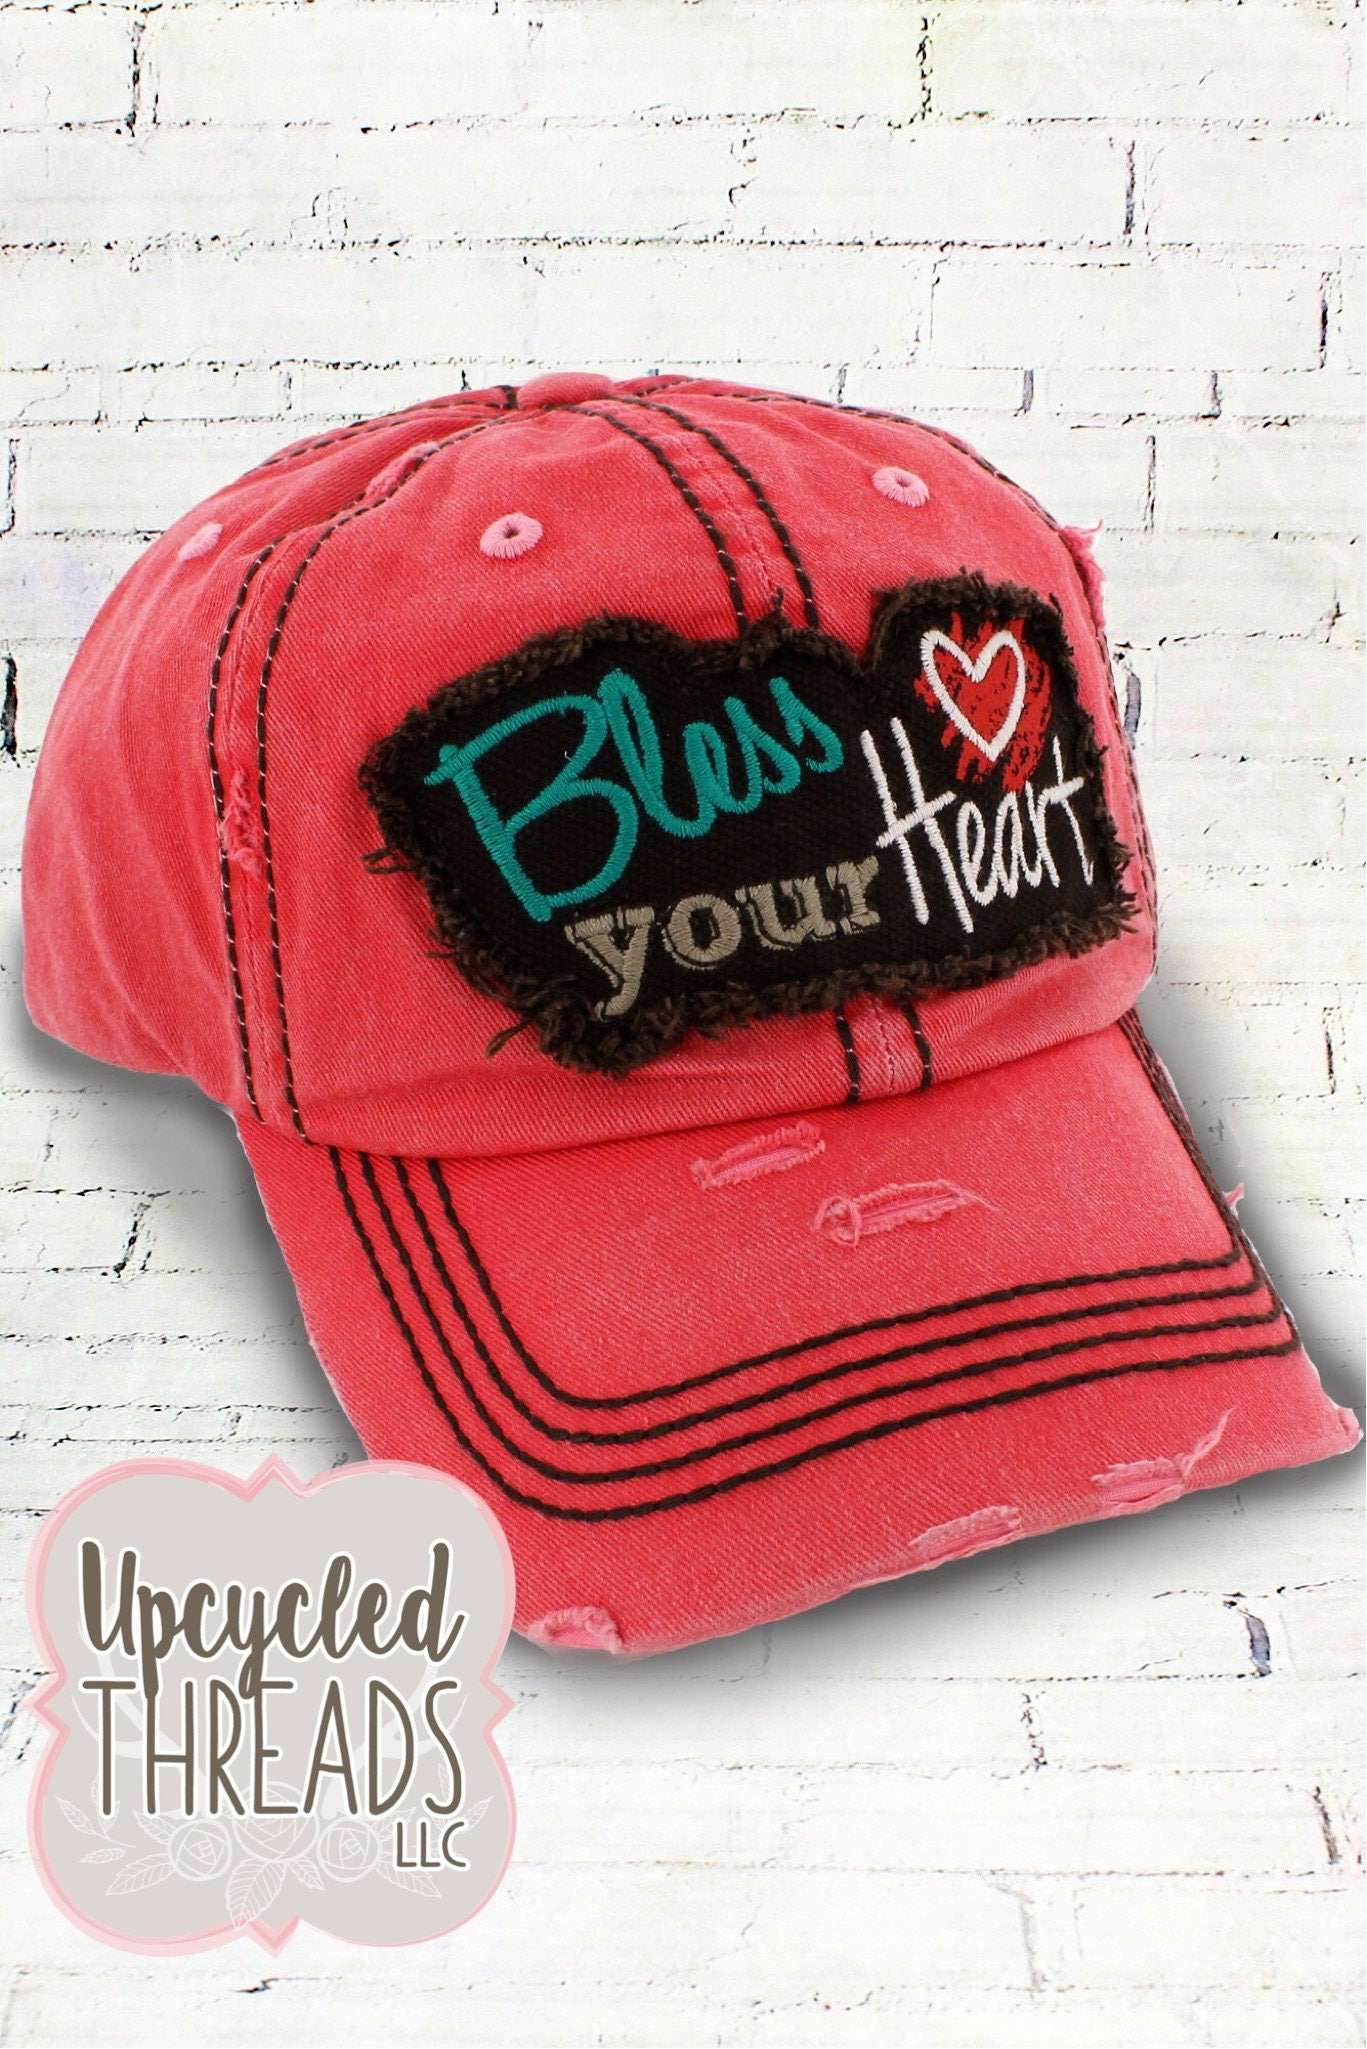 Bless Your Heart Hat Vintage Hat Women S Baseball Hat Distressed